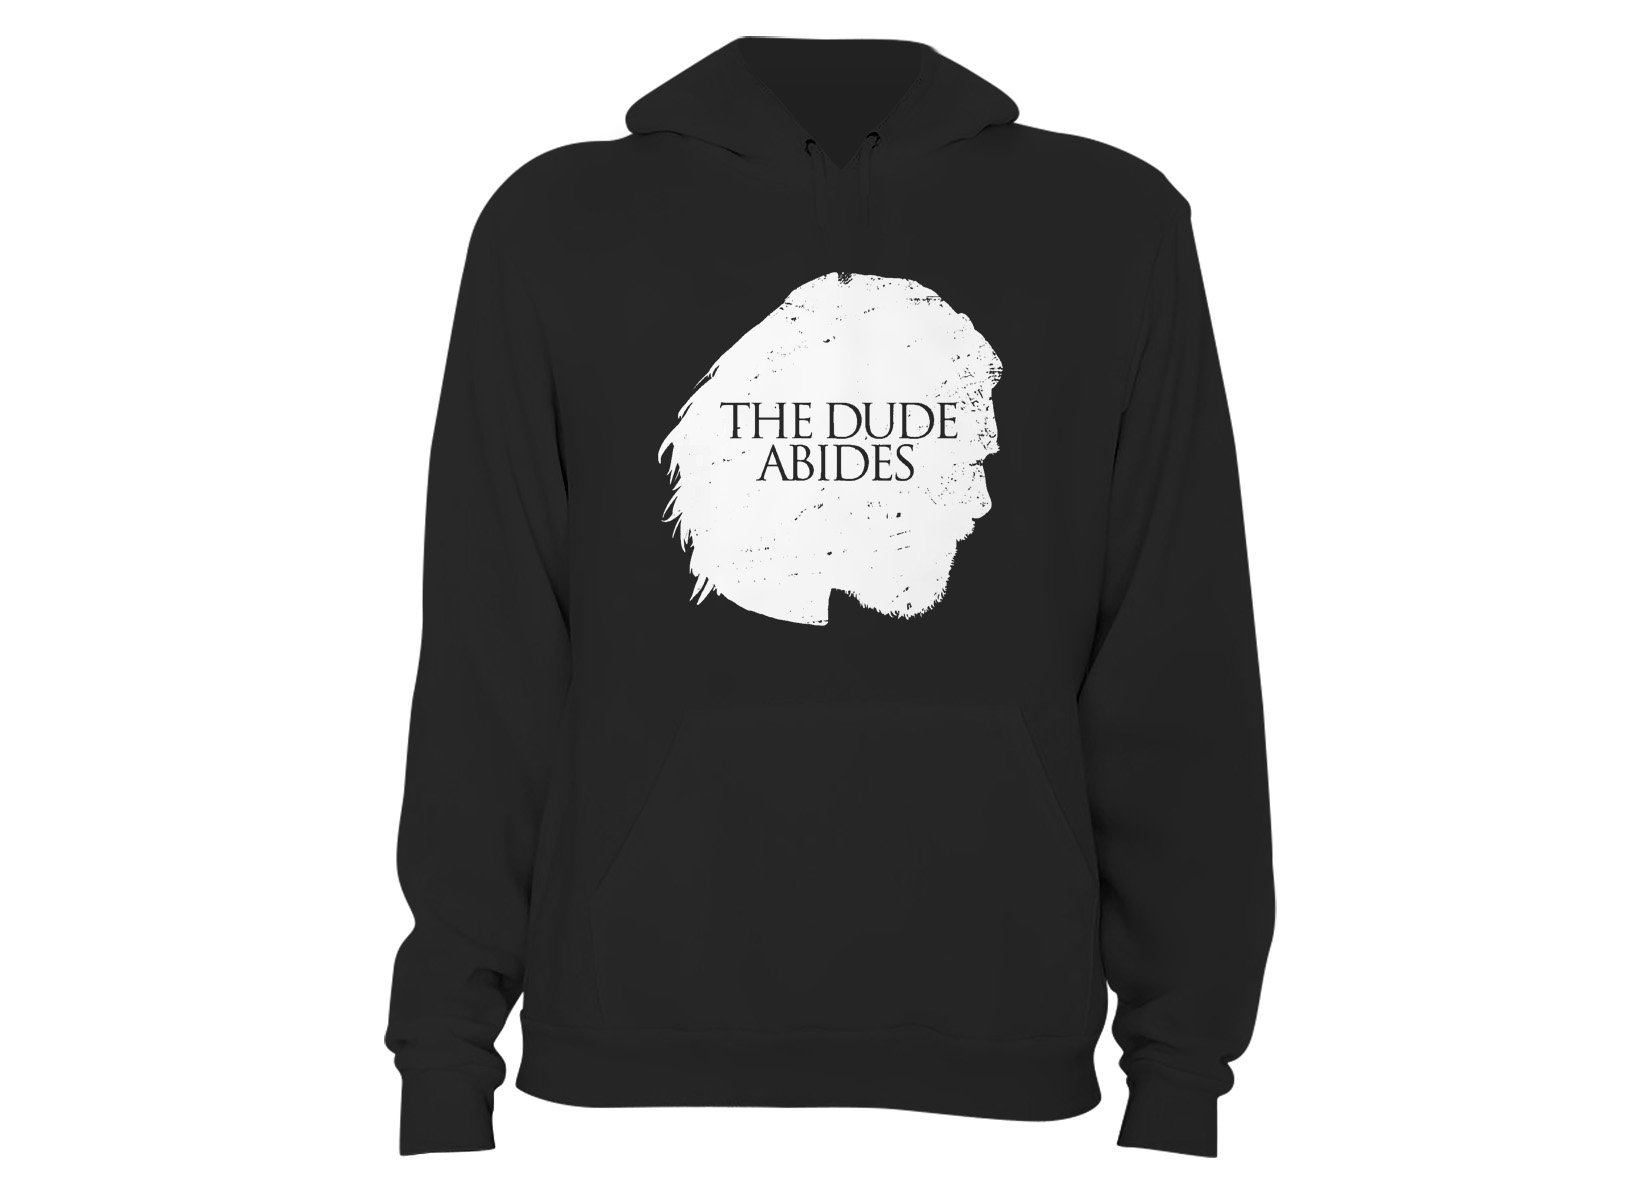 The Dude Abides on Hoodie